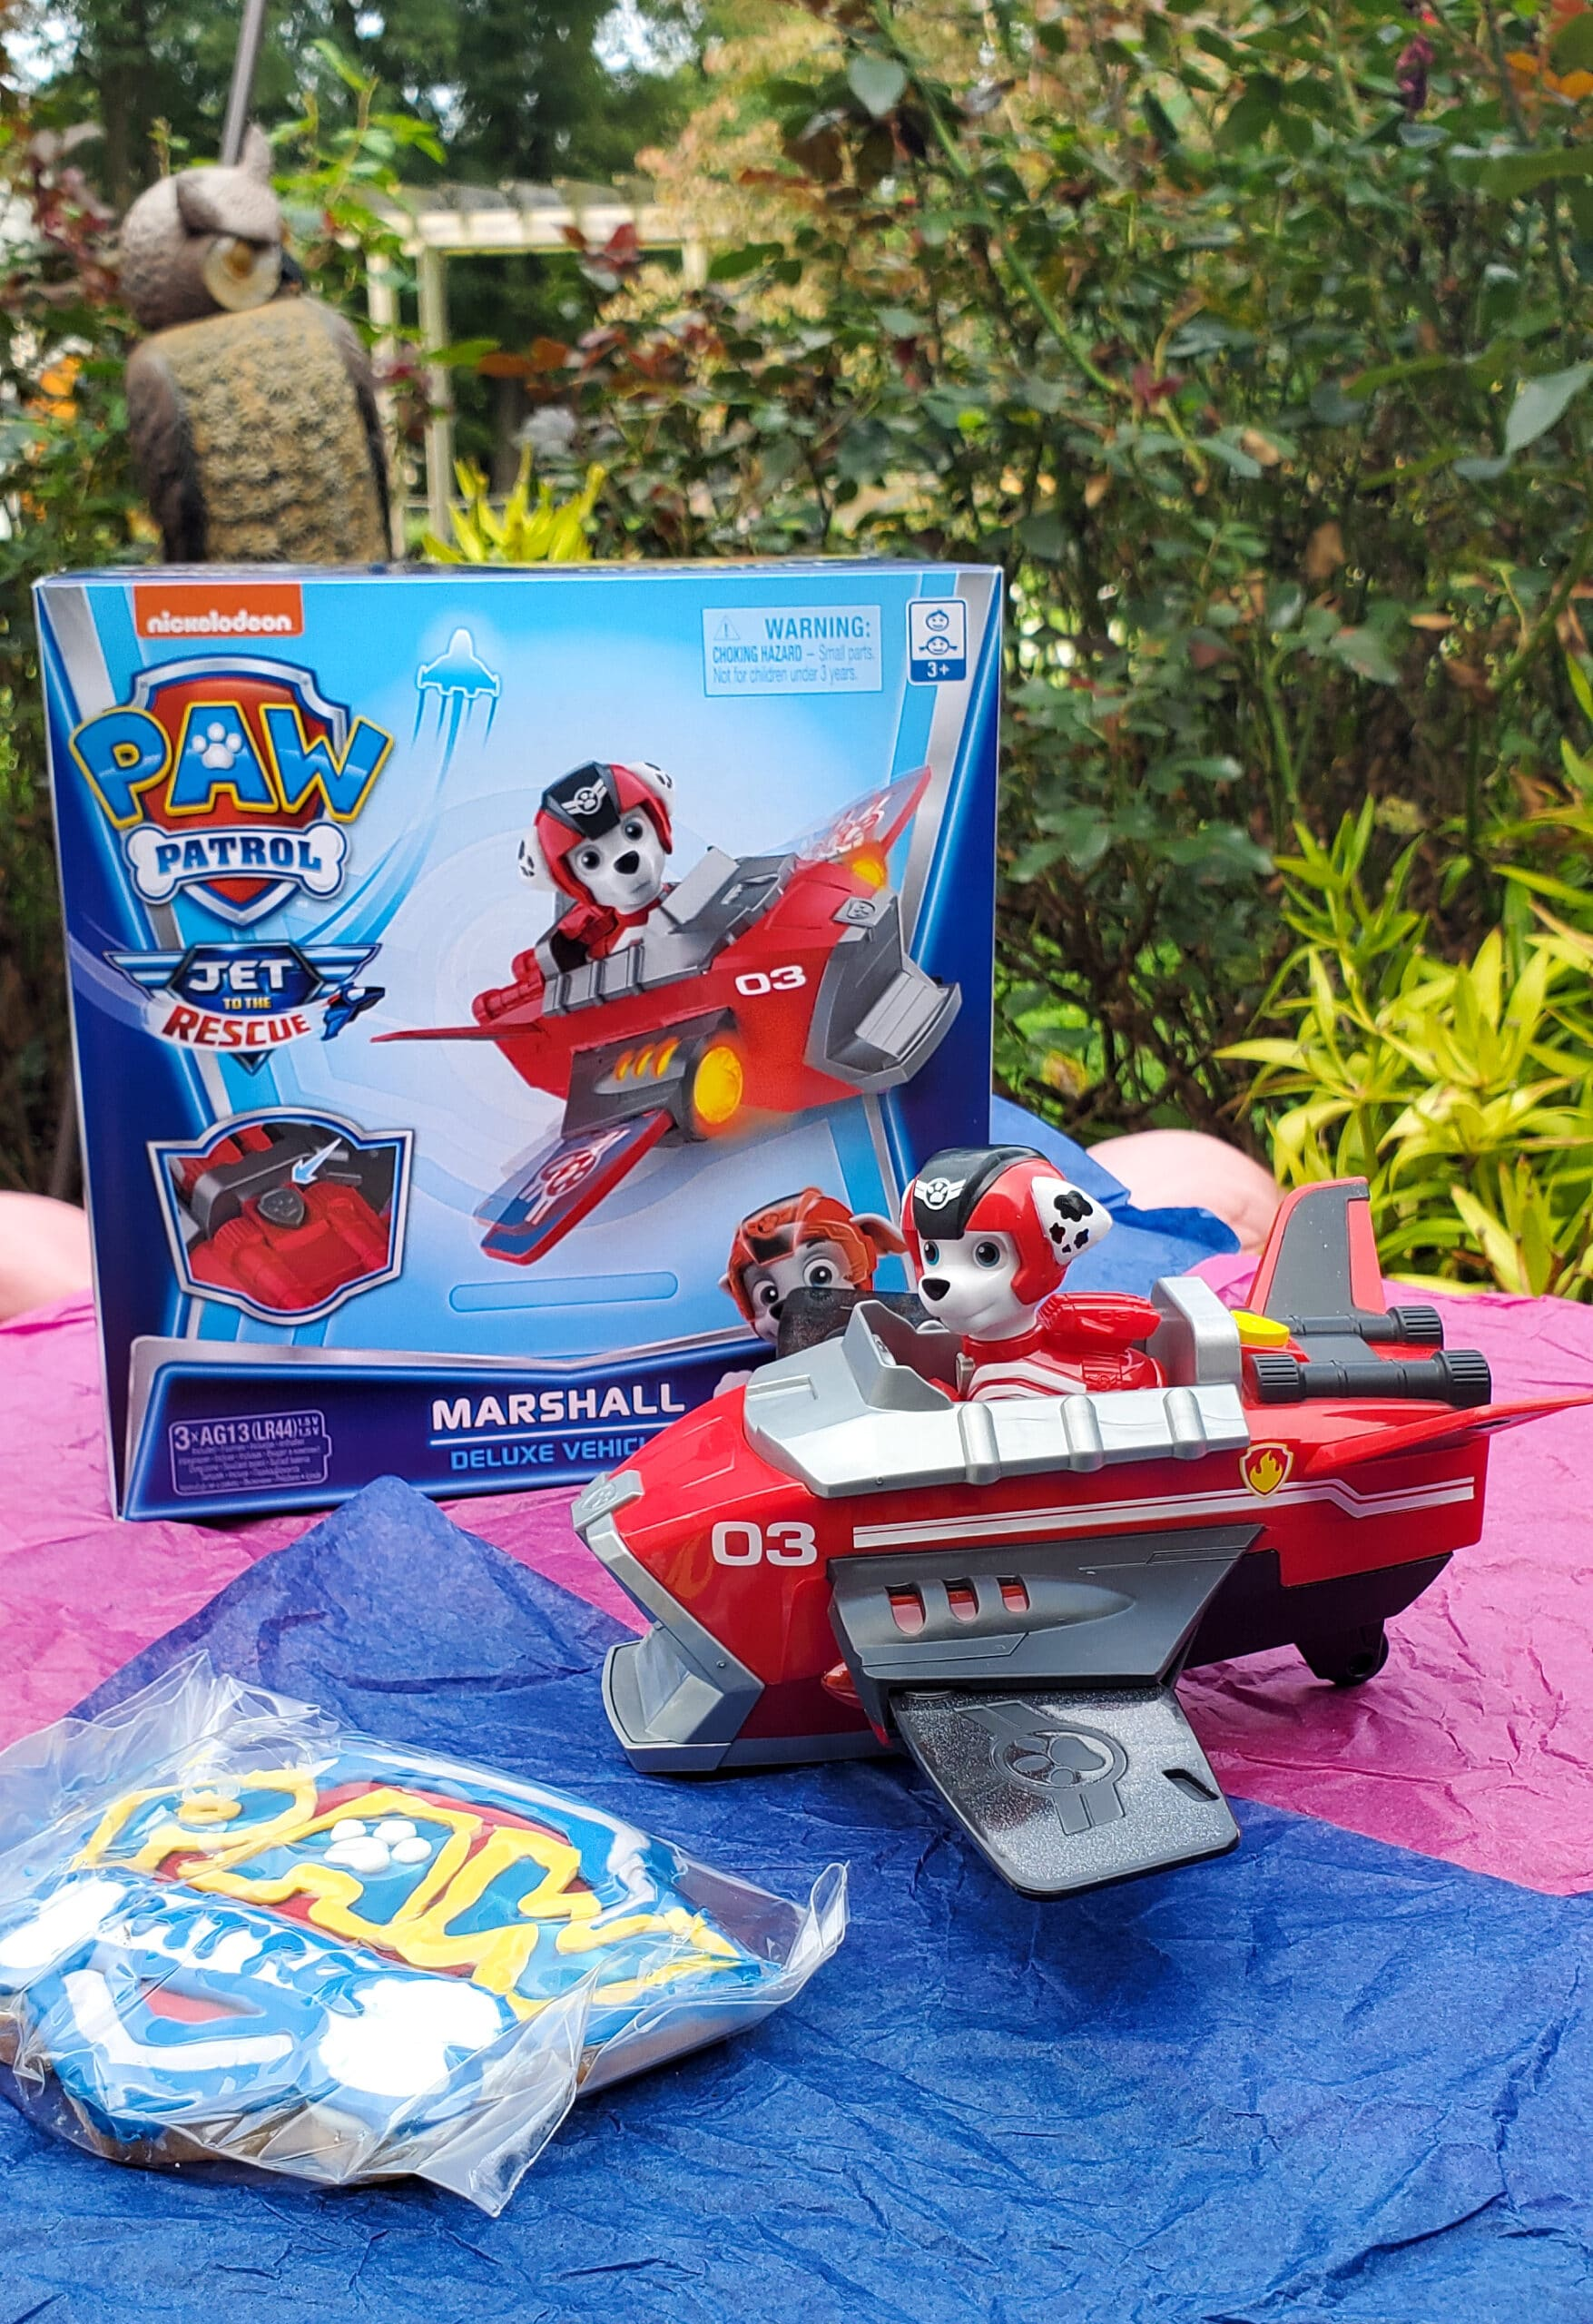 PAW Patrol: Jet to the Rescue Marshal Deluxe Vehicle. Get ready for high-flying adventures with thePAW Patrolpups in the brand-new DVDPAW Patrol: Jet to the Rescue. In celebration of the release of this special feature, Nickelodeon sent us a surprise box full of PAW Patrol goodies! View all of the fun new PAW Patrol: Jet to the Rescue themed toys available on my blog.